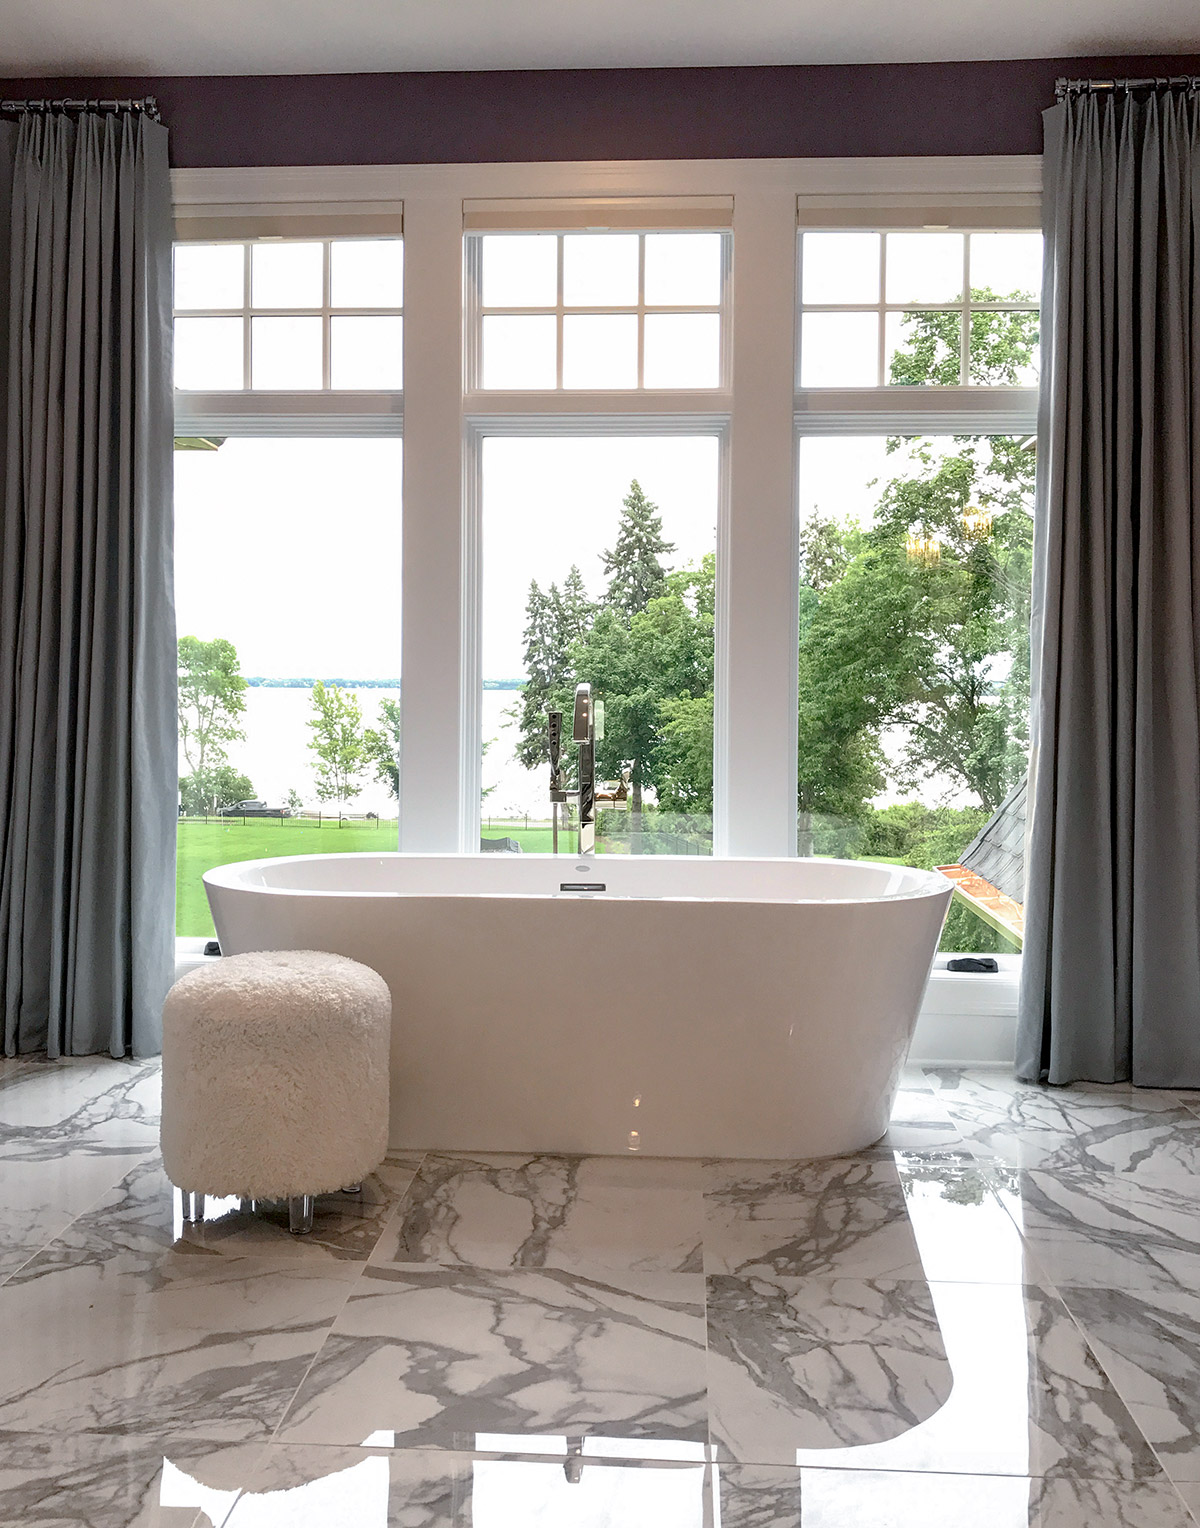 Artisan Home tour master bath with marble floors and freestanding tub